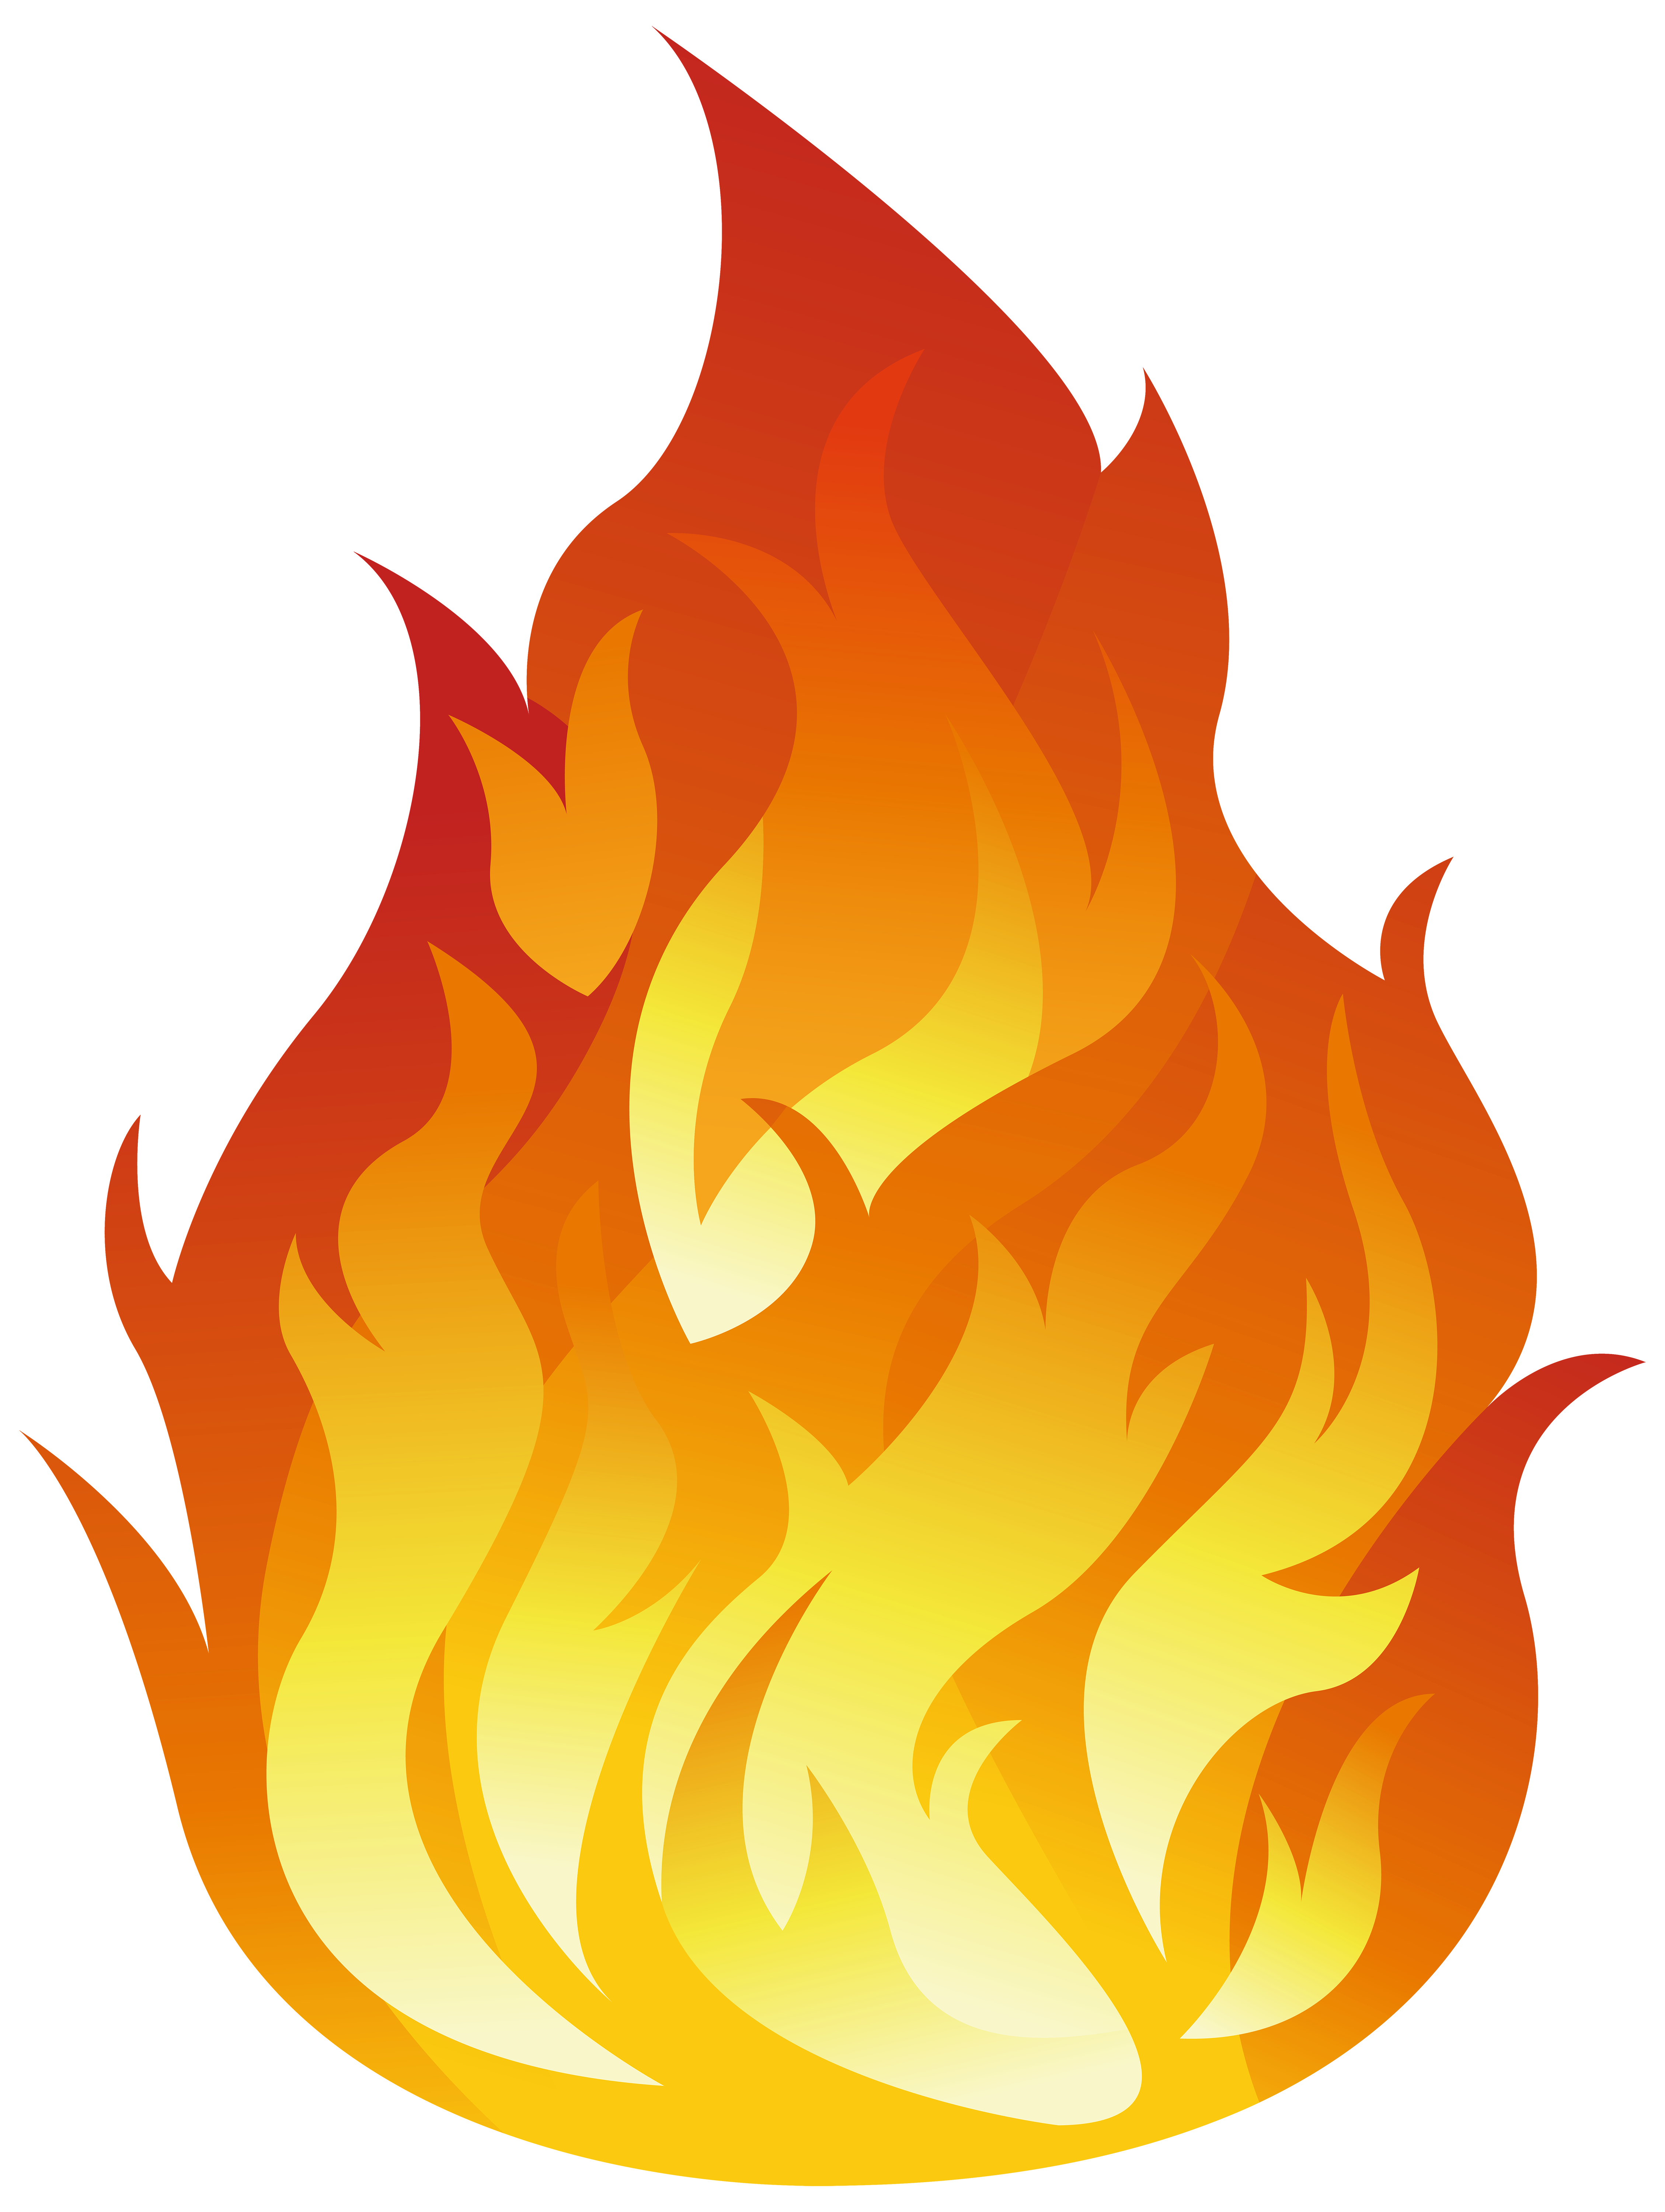 Fire clipart #3, Download drawings